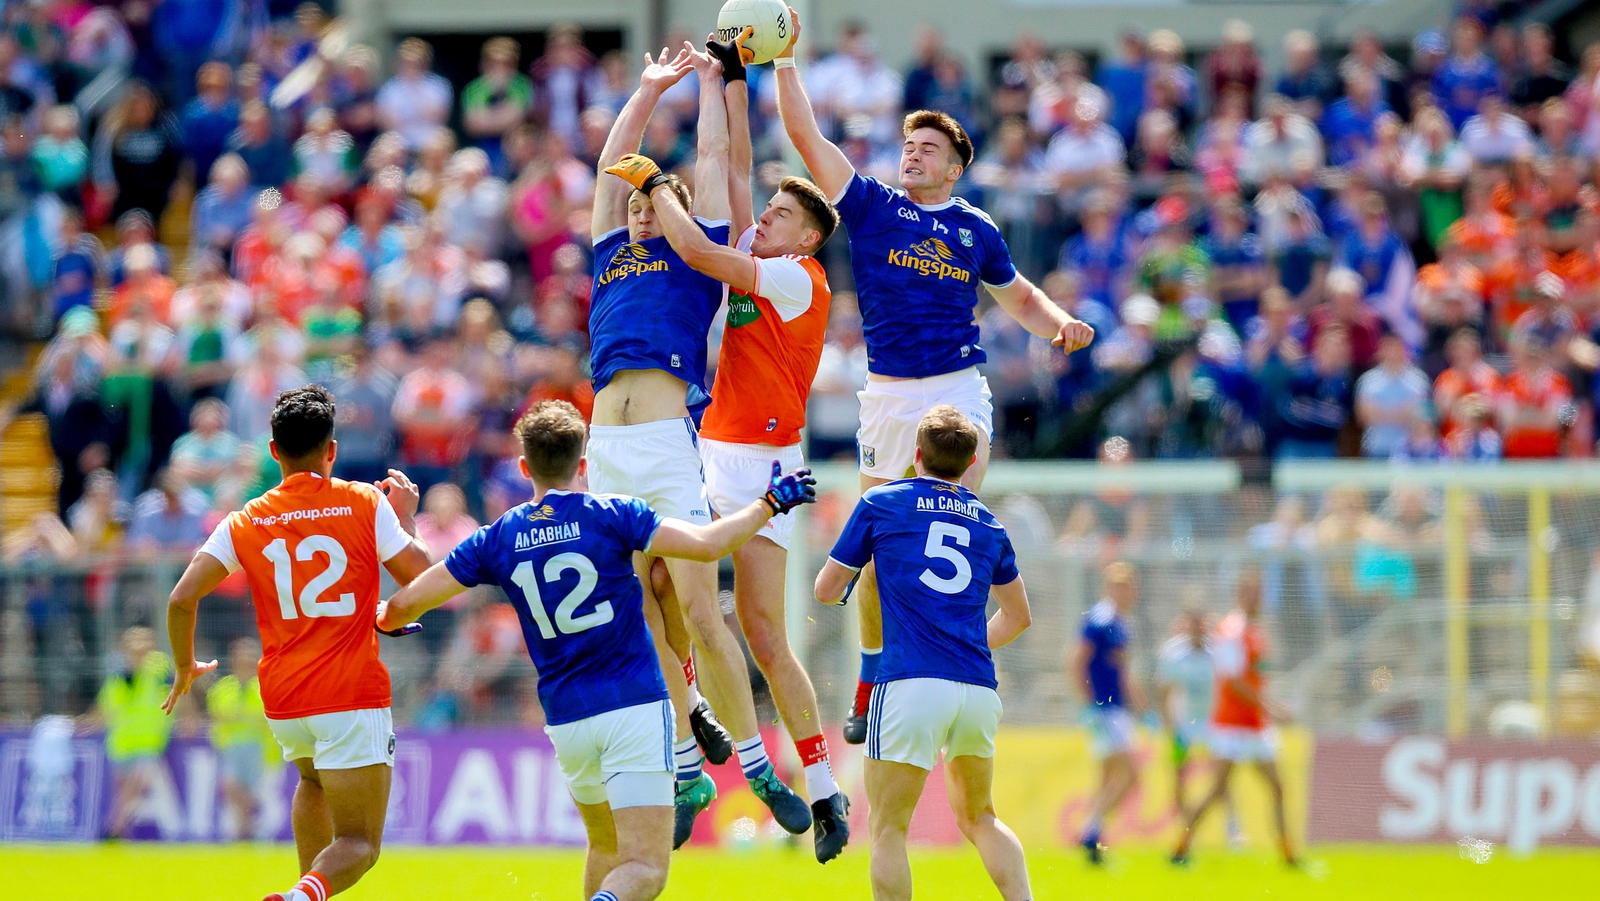 Image - Cavan beat Armagh in an Ulster semi-final replay